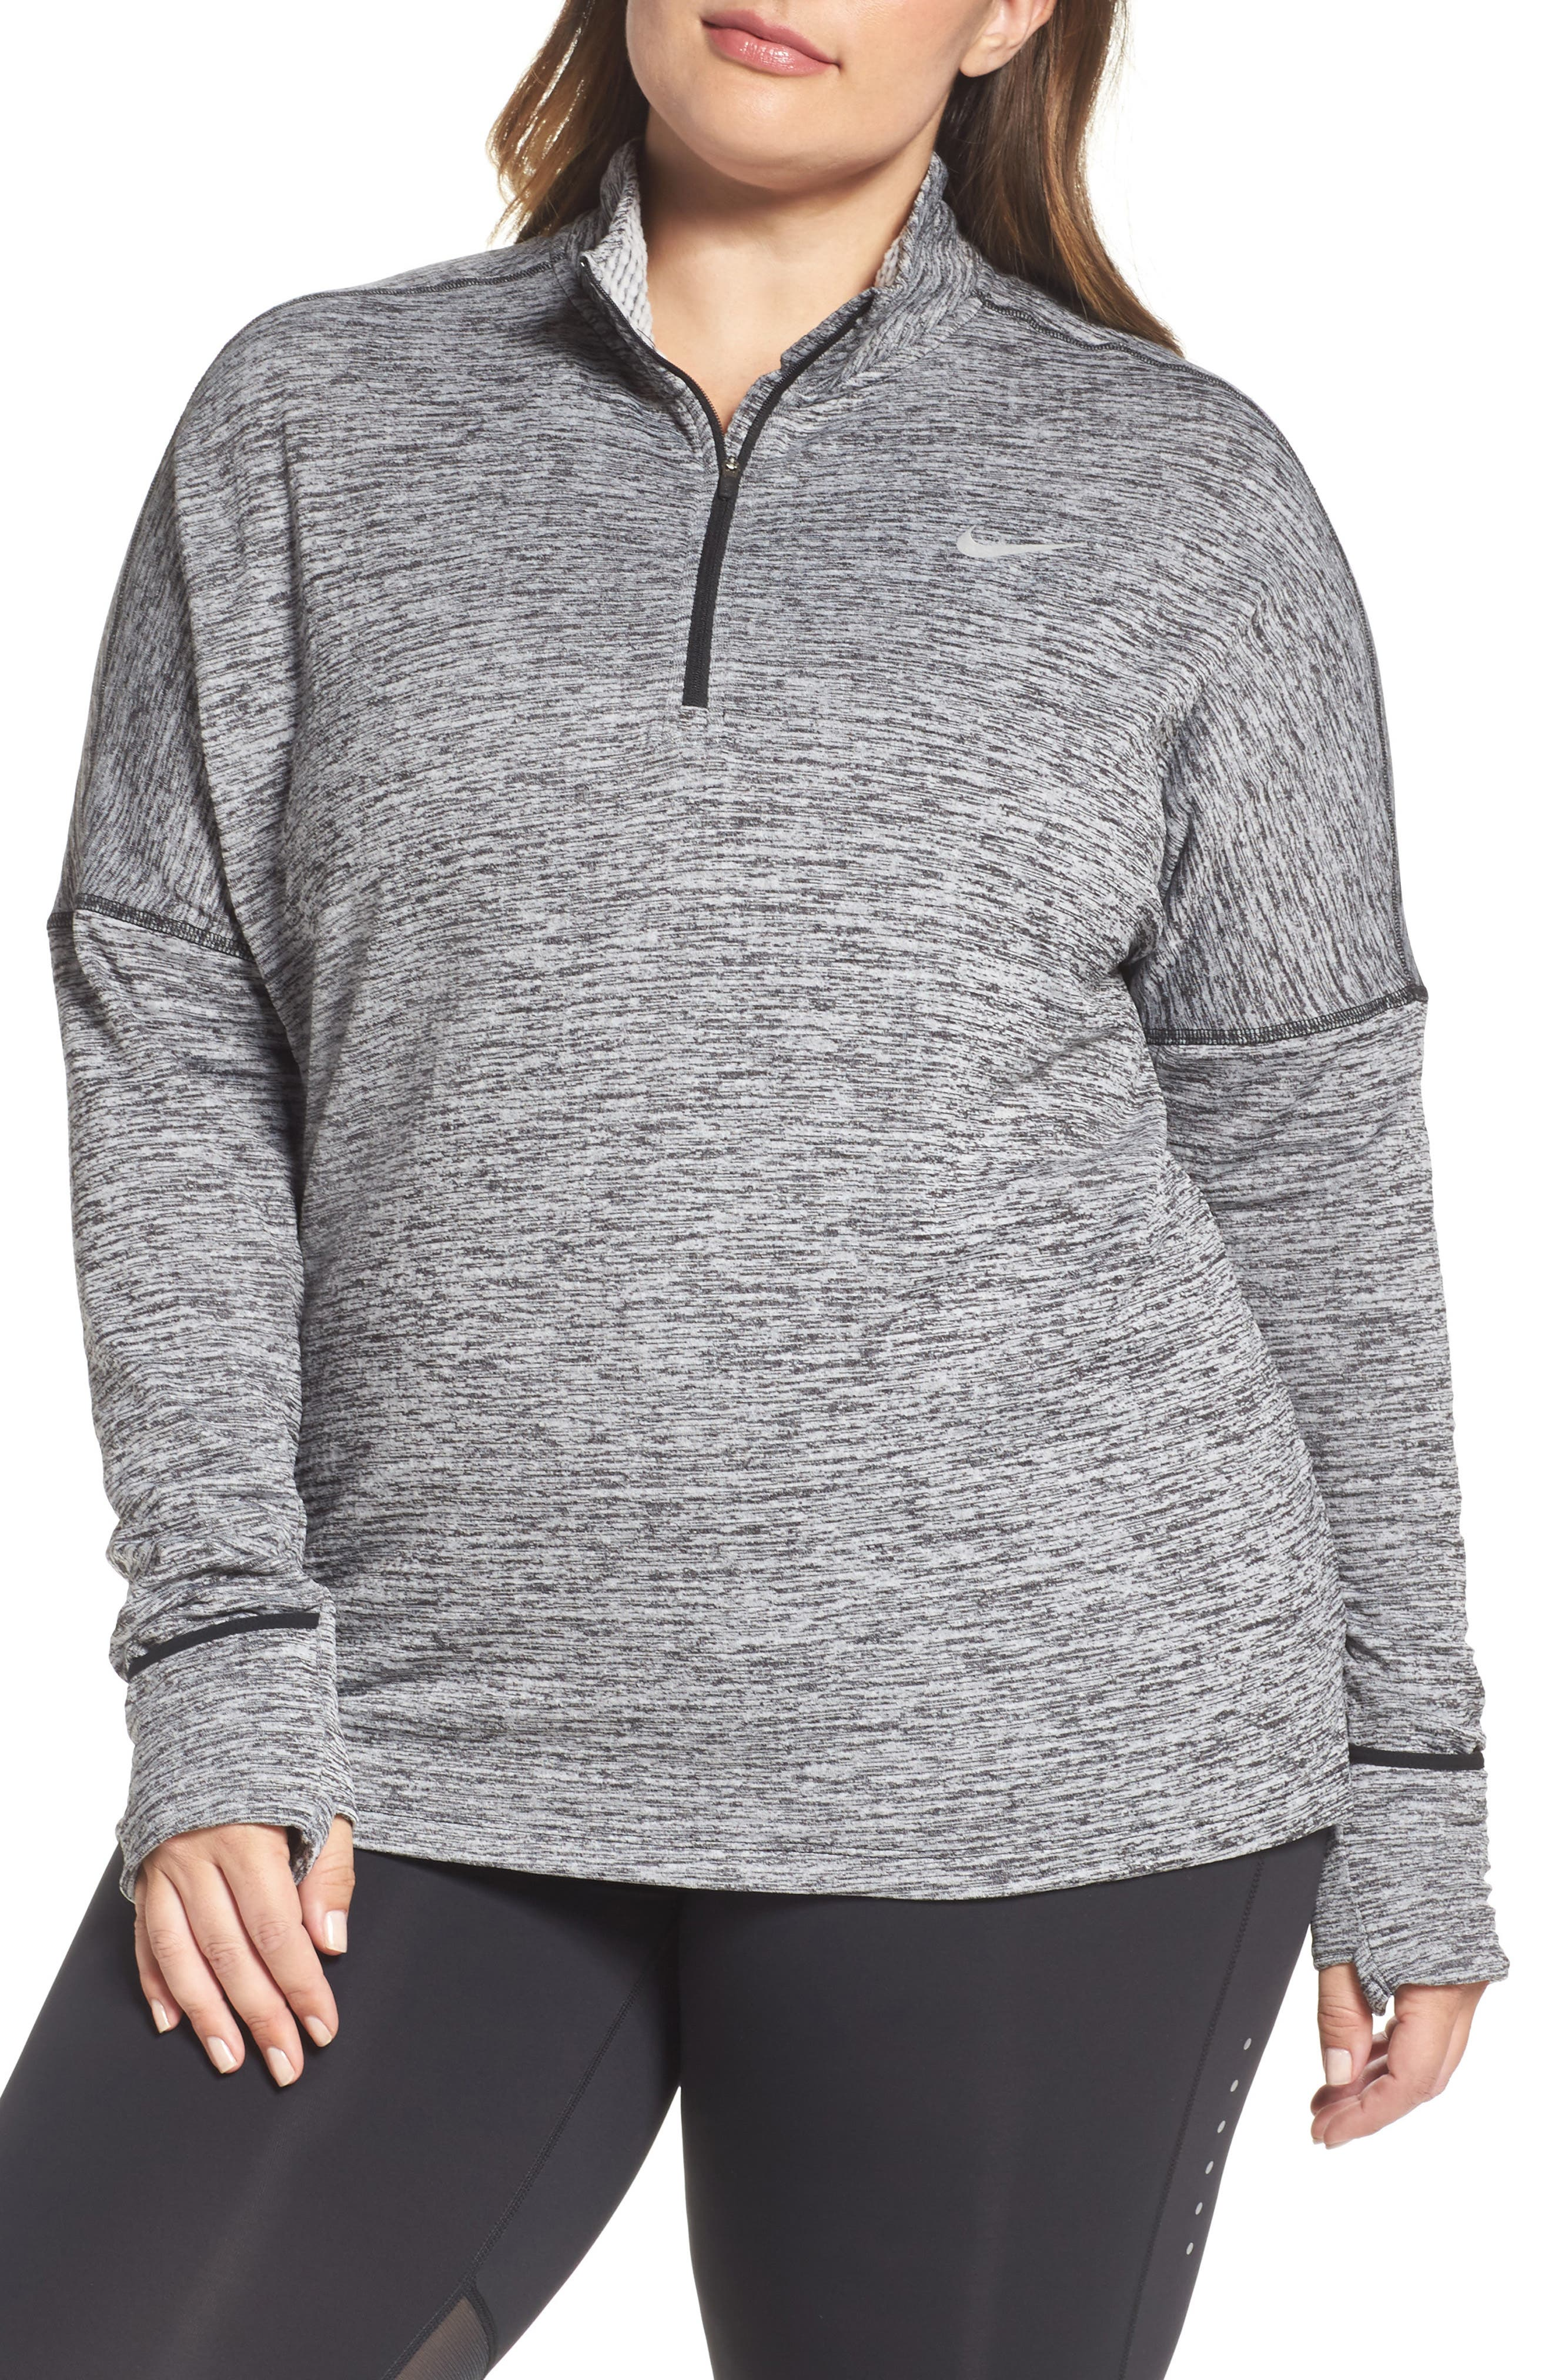 Sphere Element Long Sleeve Running Top,                         Main,                         color,